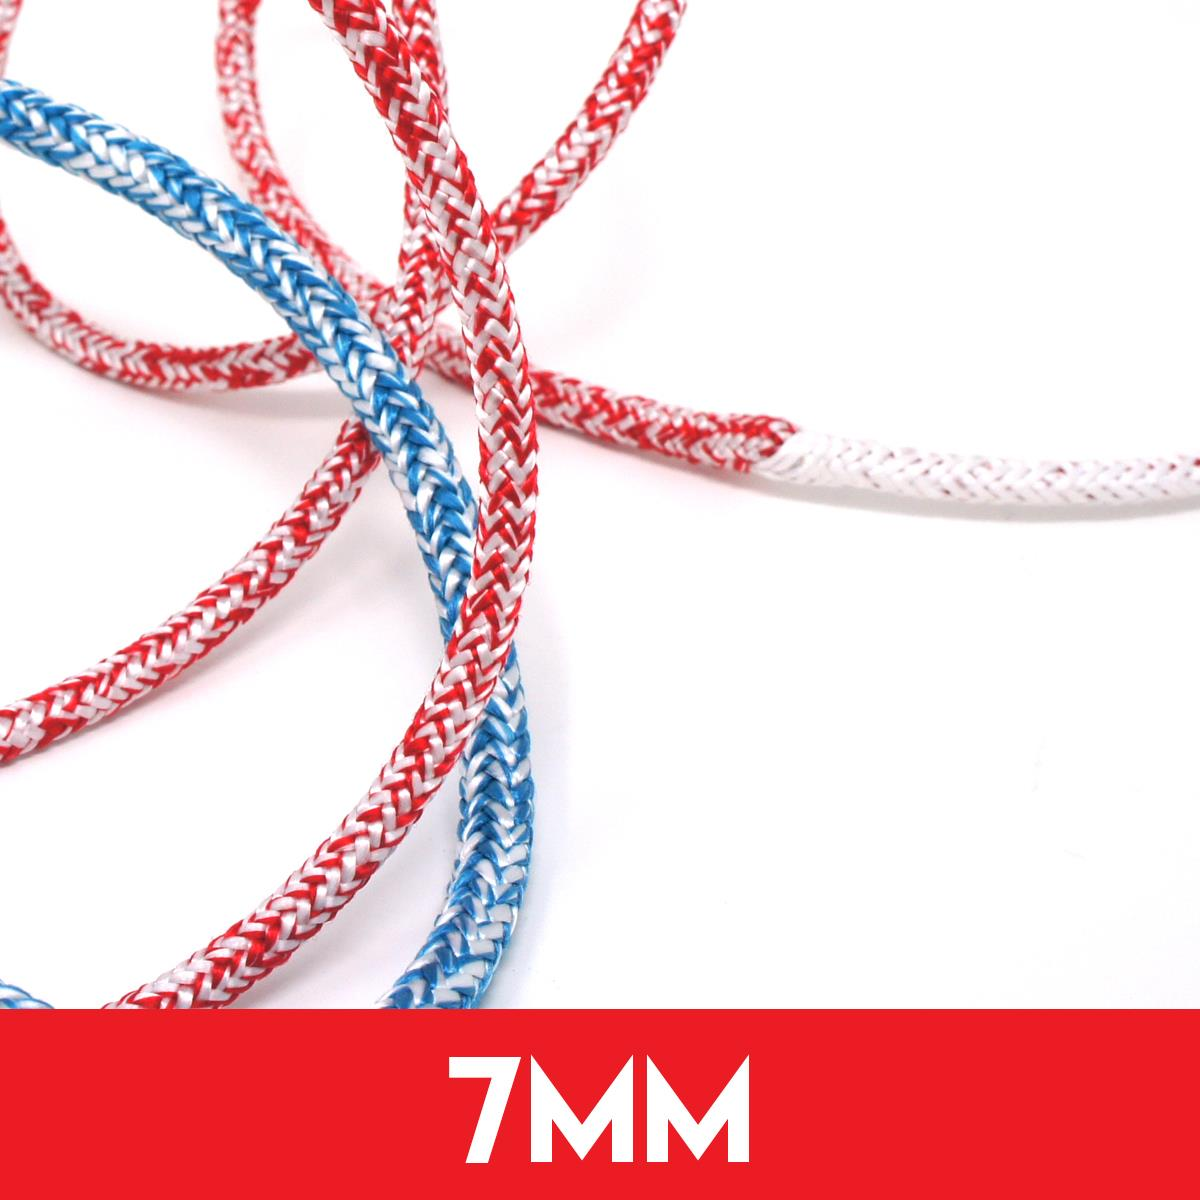 7mm Evolution Dinghy Lite Dyneema Core Rope